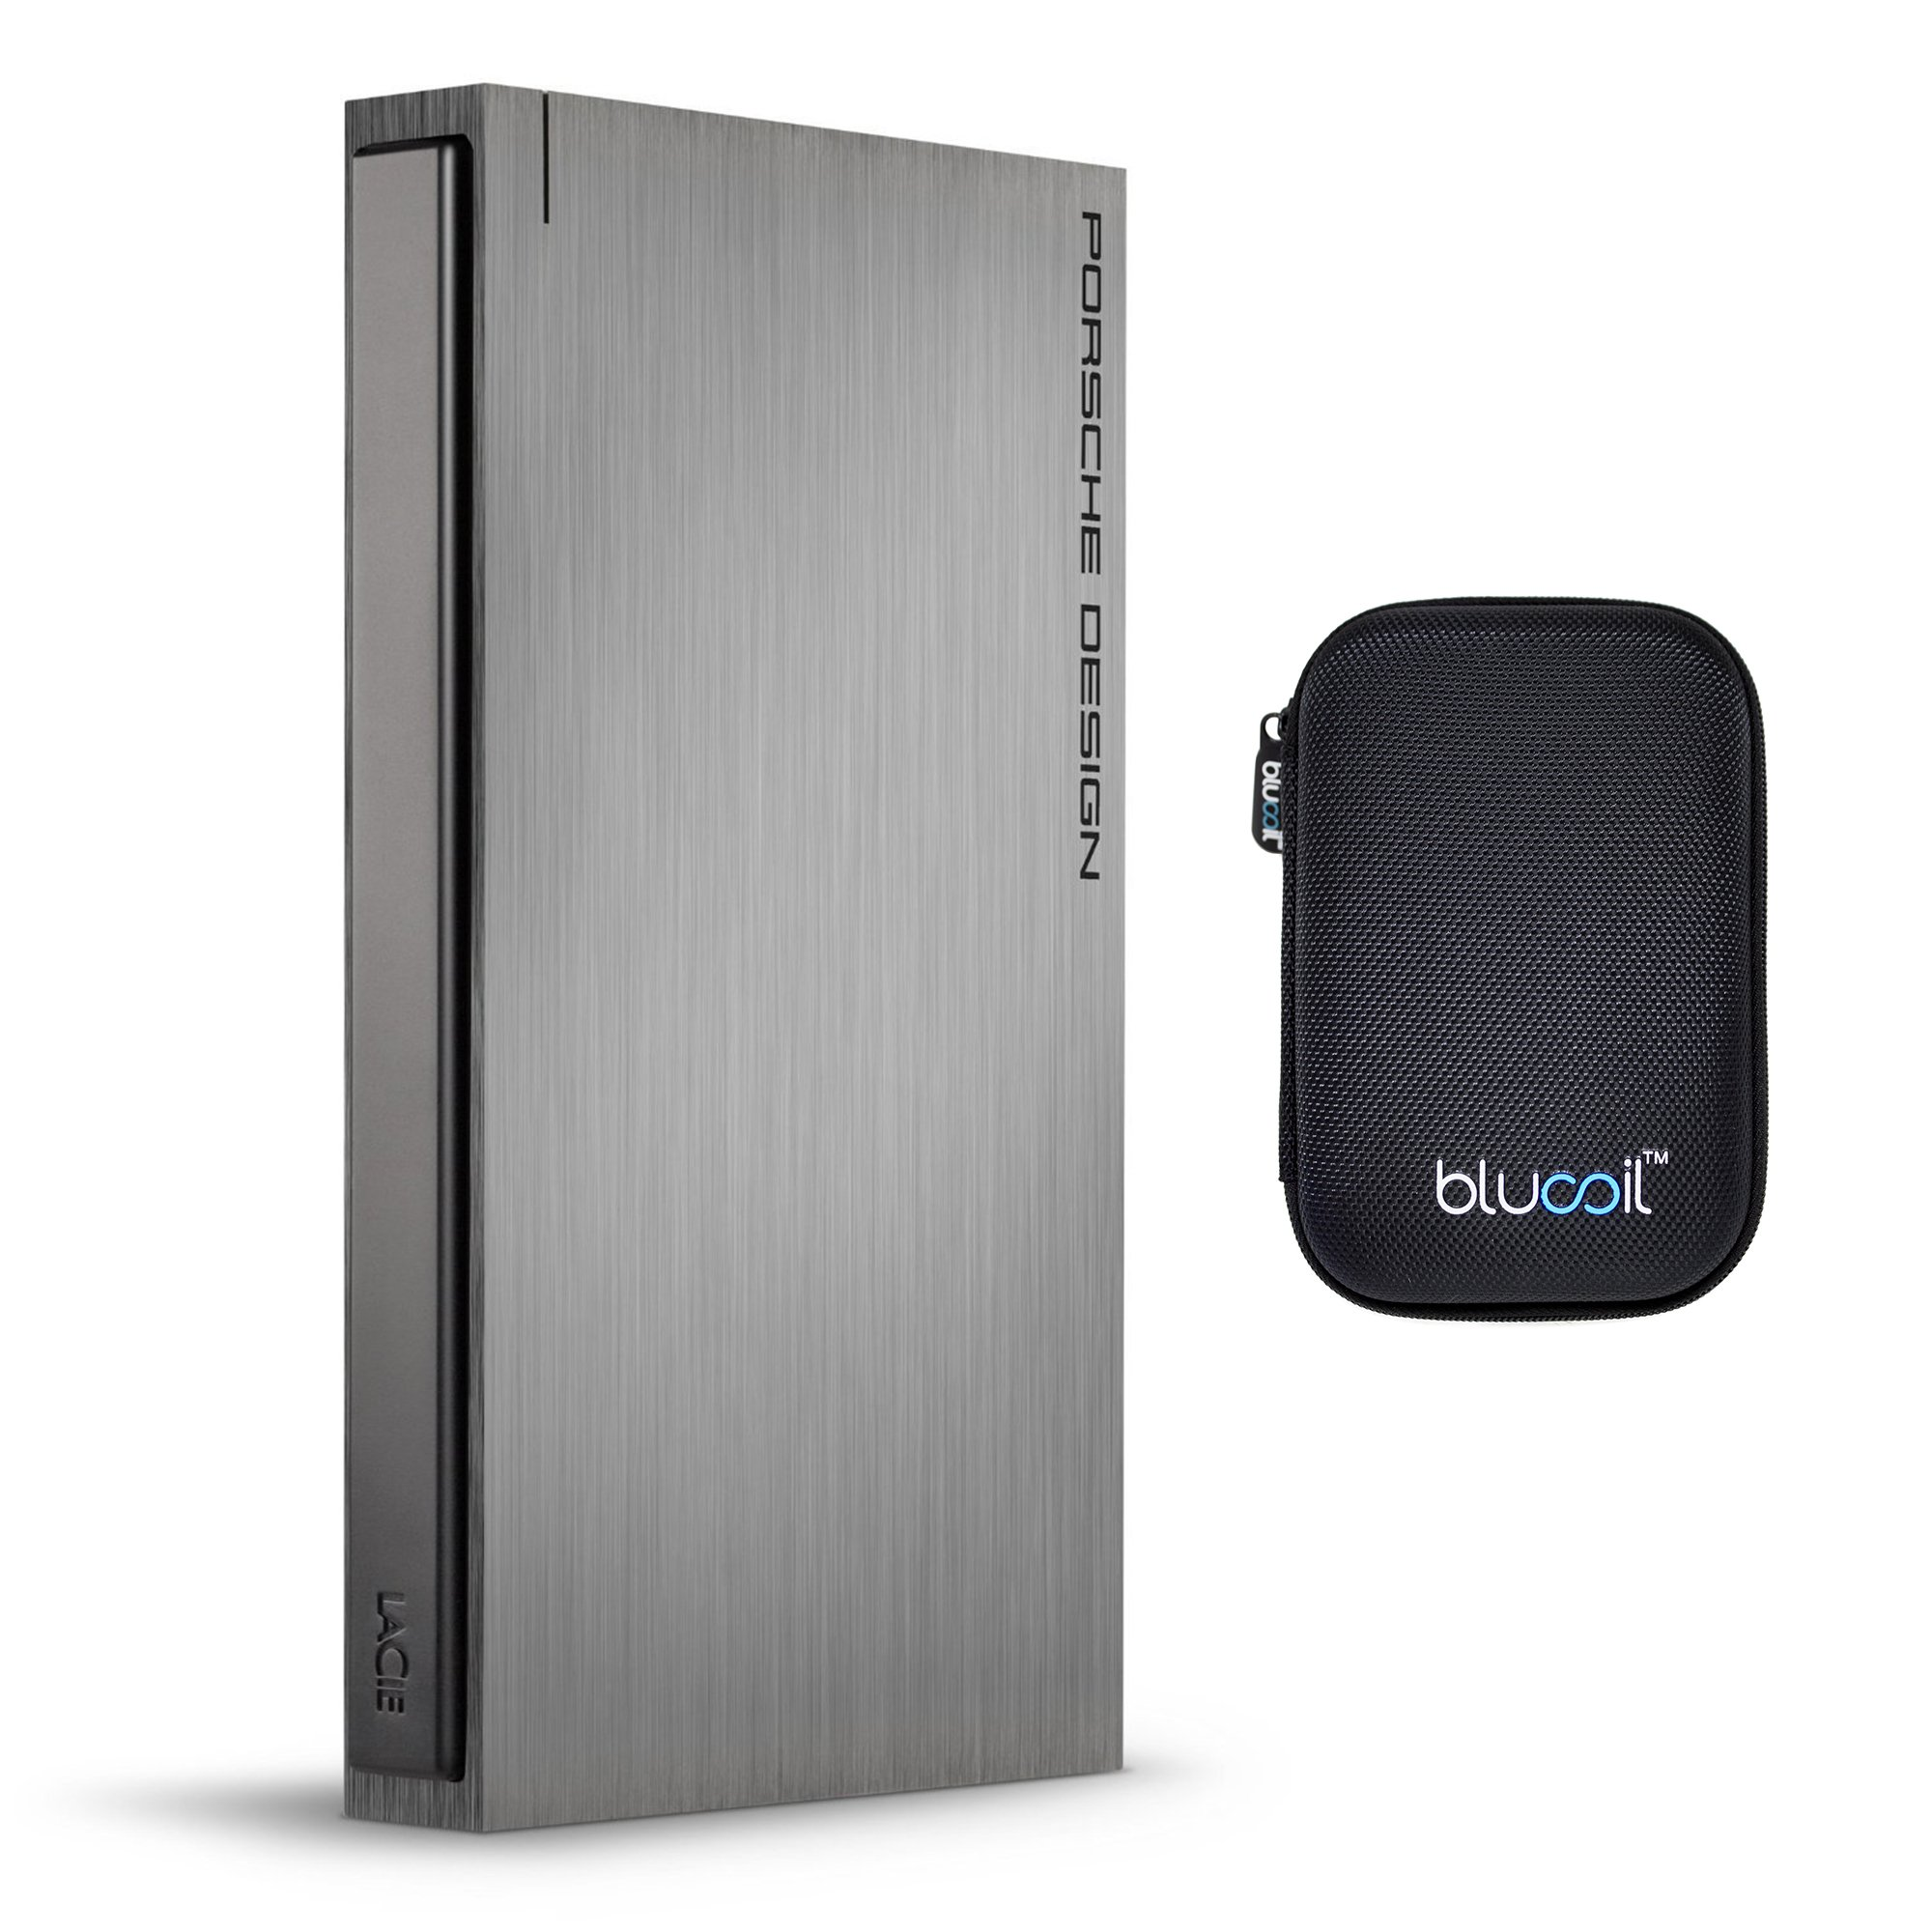 LaCie 1TB Porsche Design P'9220 Mobile Hard Drive USB 3.0/2.0 Compatible BUNDLED WITH Blucoil Portable Shockproof EVA Hard Case for 5.6 x 3.6 x 1.3'' for External Harddrive, Powerbank, GPS Devices